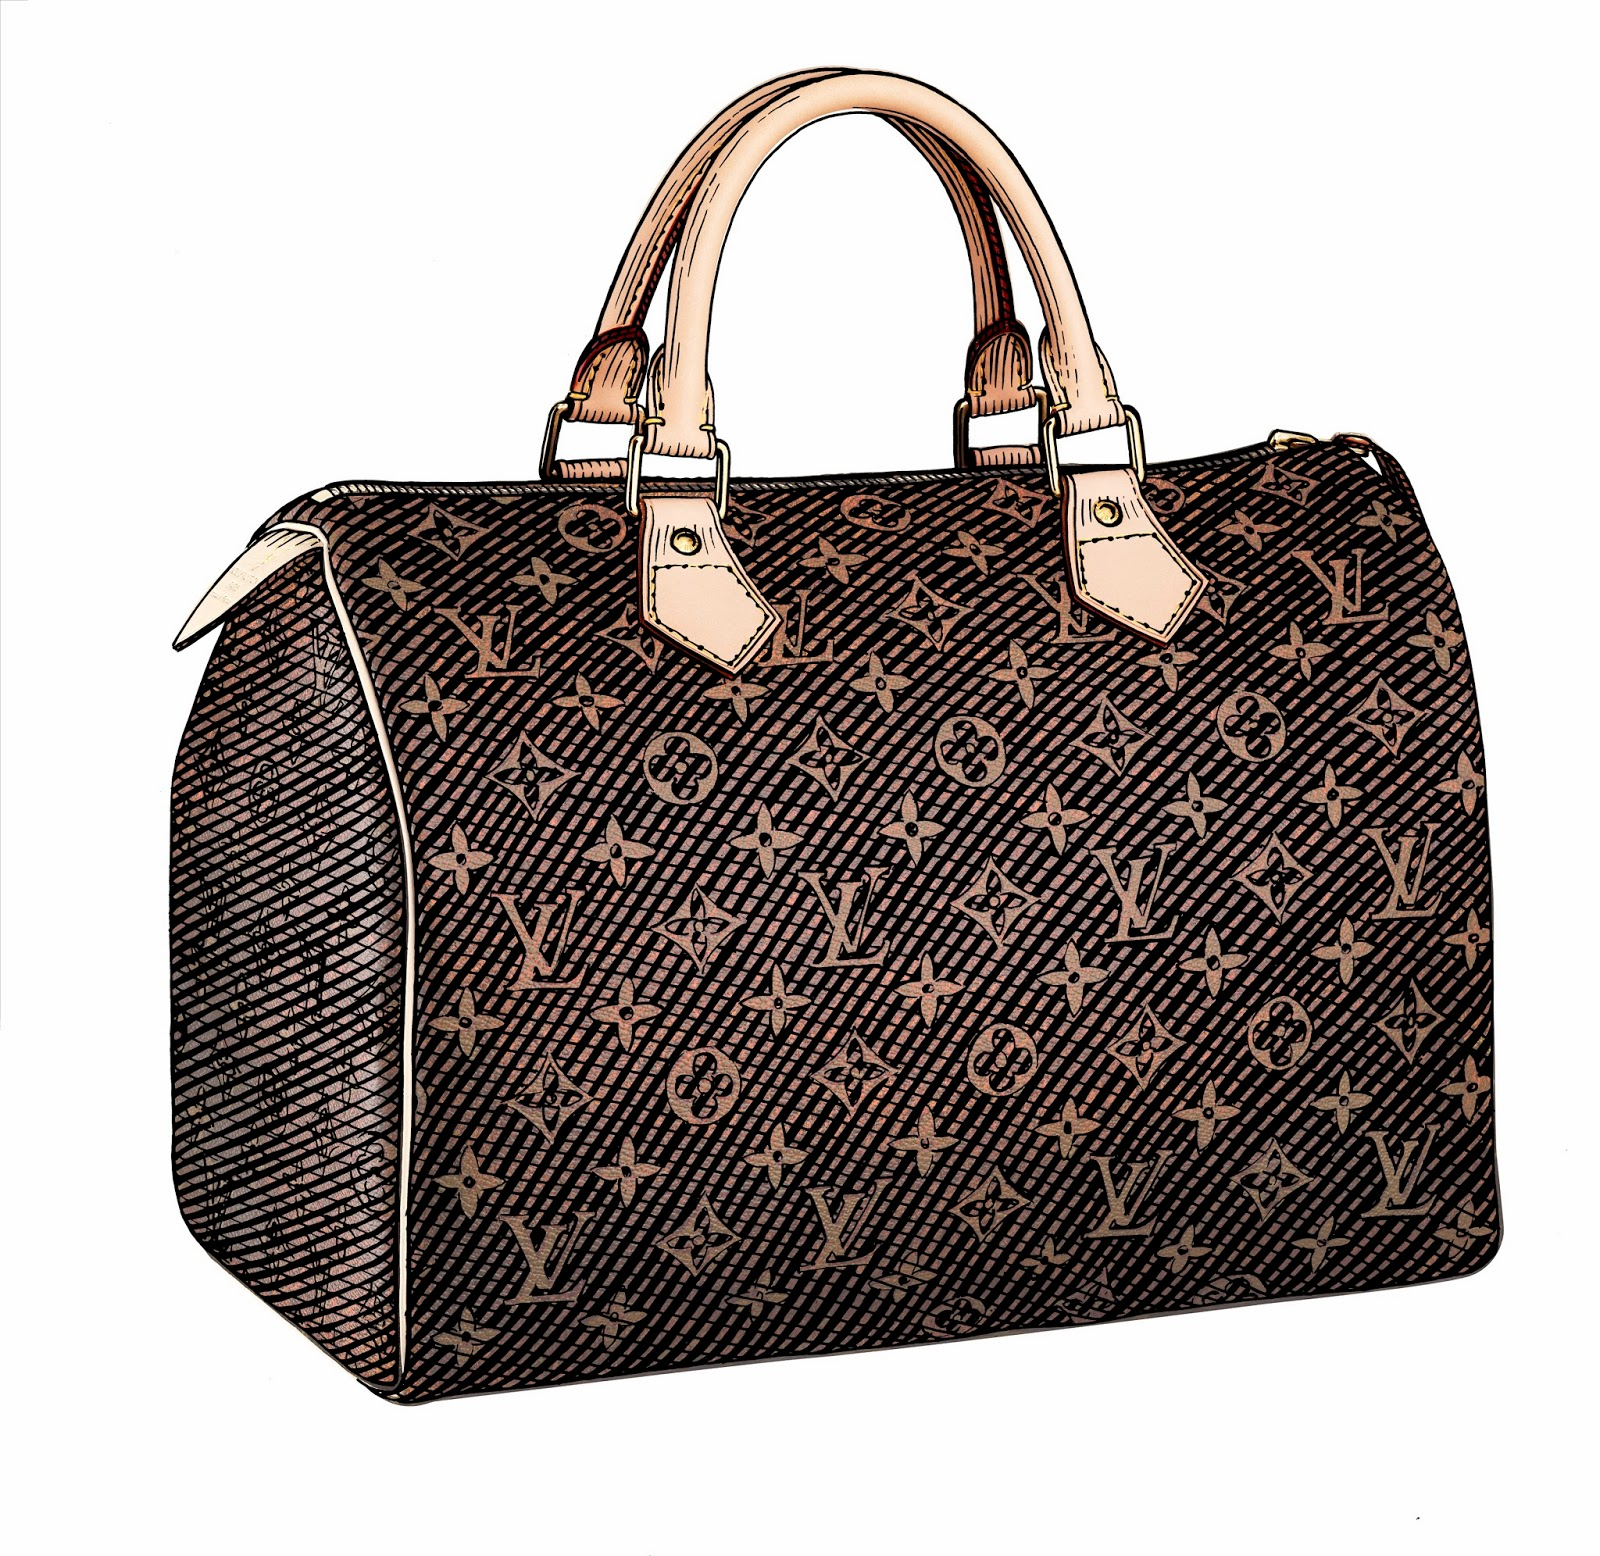 la vie c 39 est chic book louis vuitton city bags una